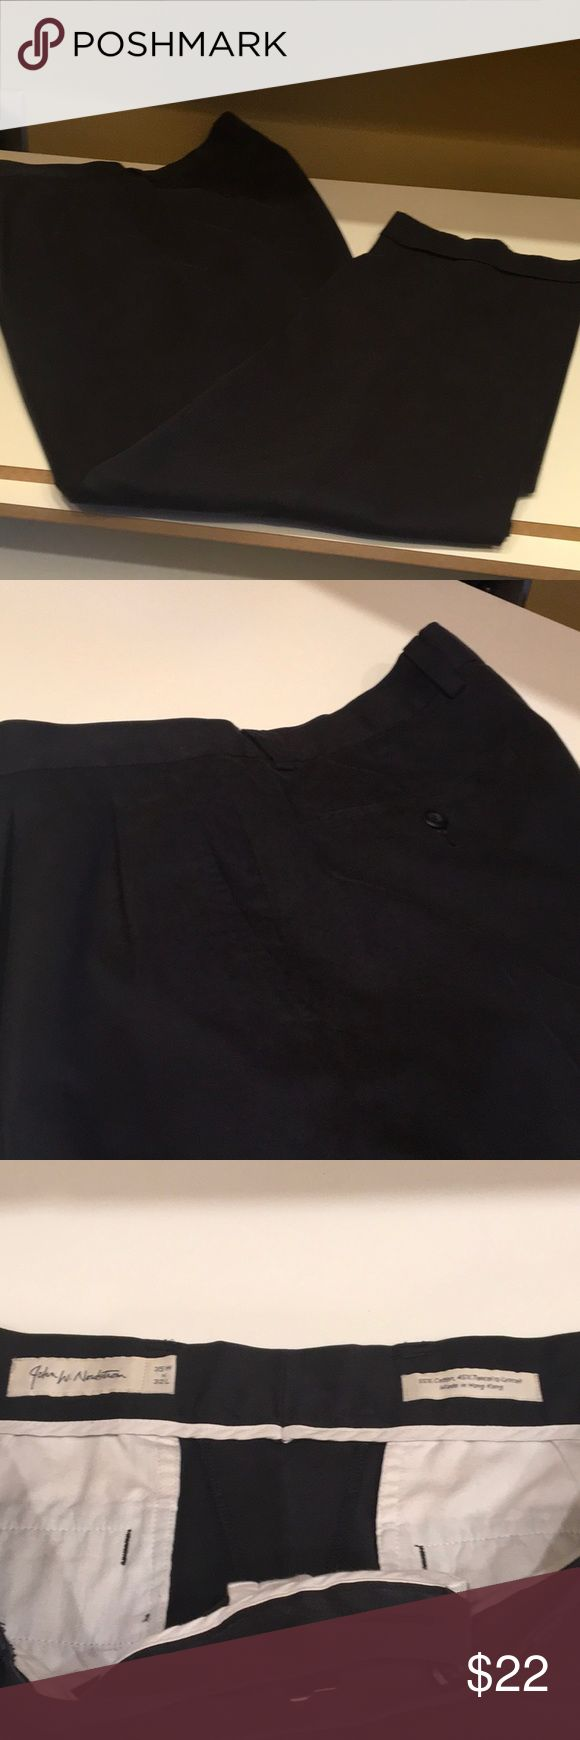 Men's Dress Slacks Nice pair of men's dress slacks. Fabric feels like a brushed suede silk....nice.Great condition, John W. Nordstrom Pants Dress